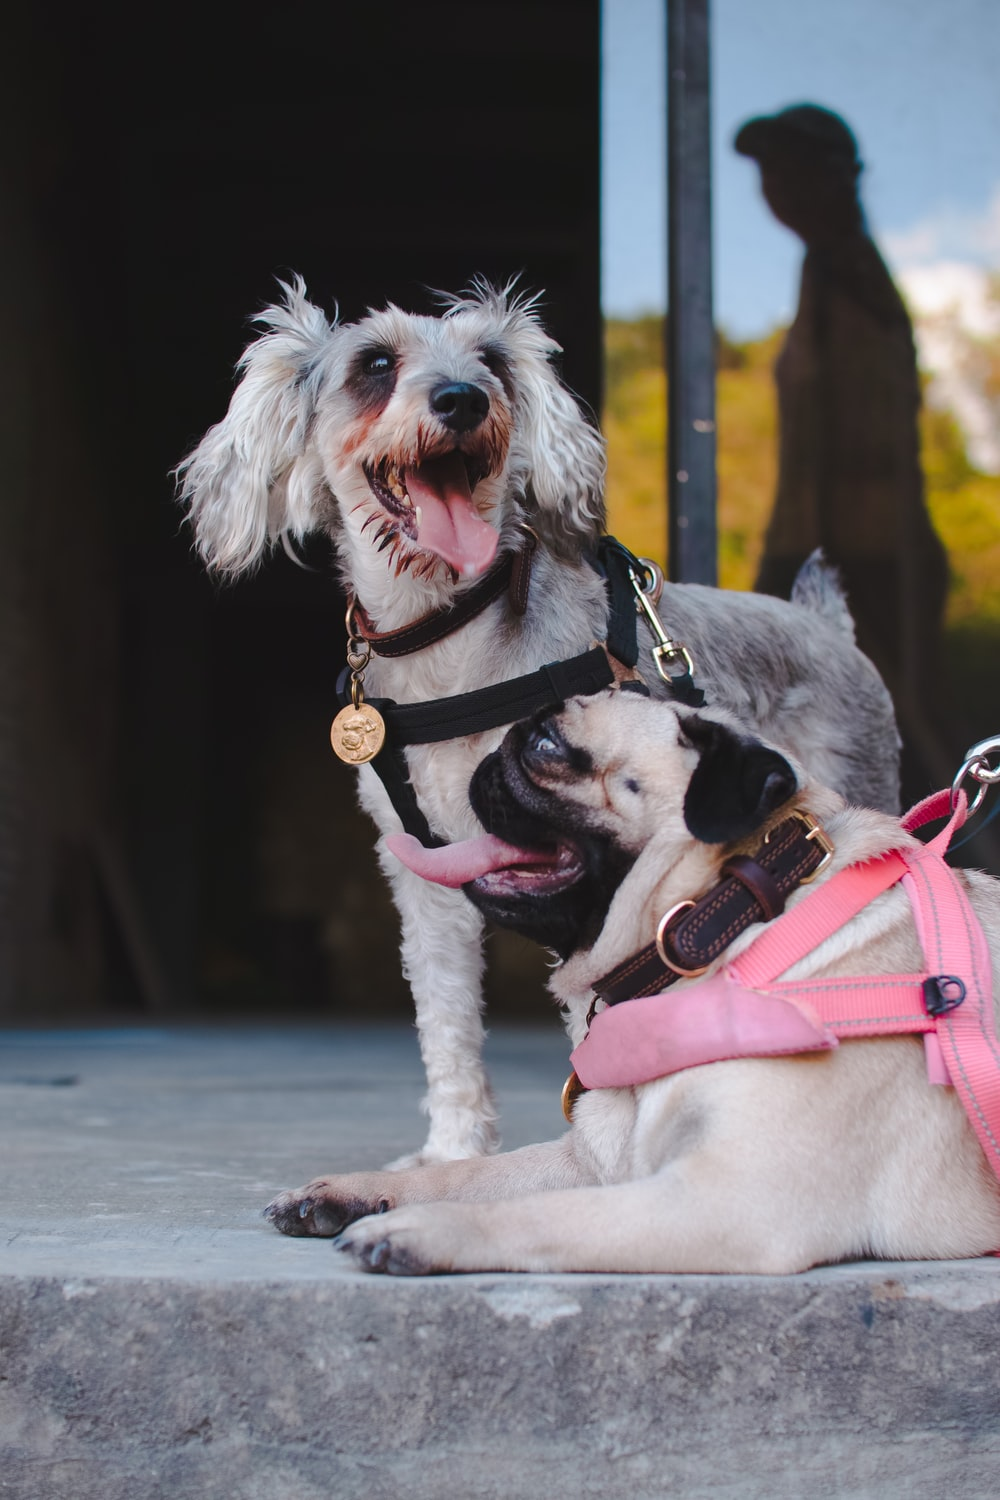 white and gray short coated small dog with pink harness